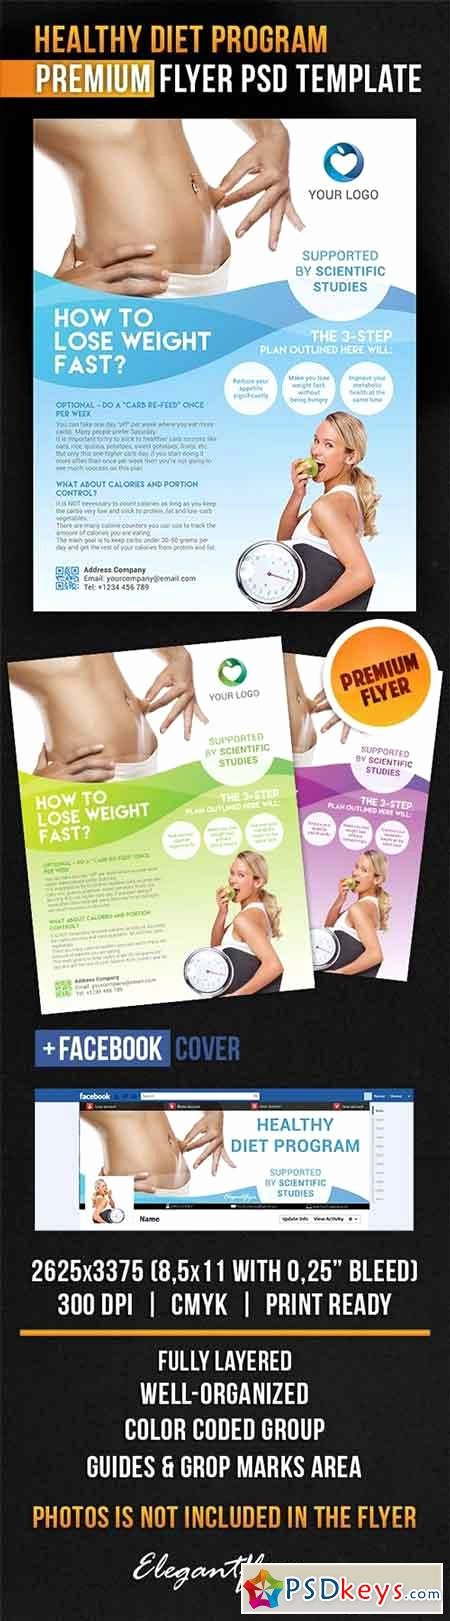 Facebook Ad Template Psd New Healthy Diet Program Flyer Psd Template Cover